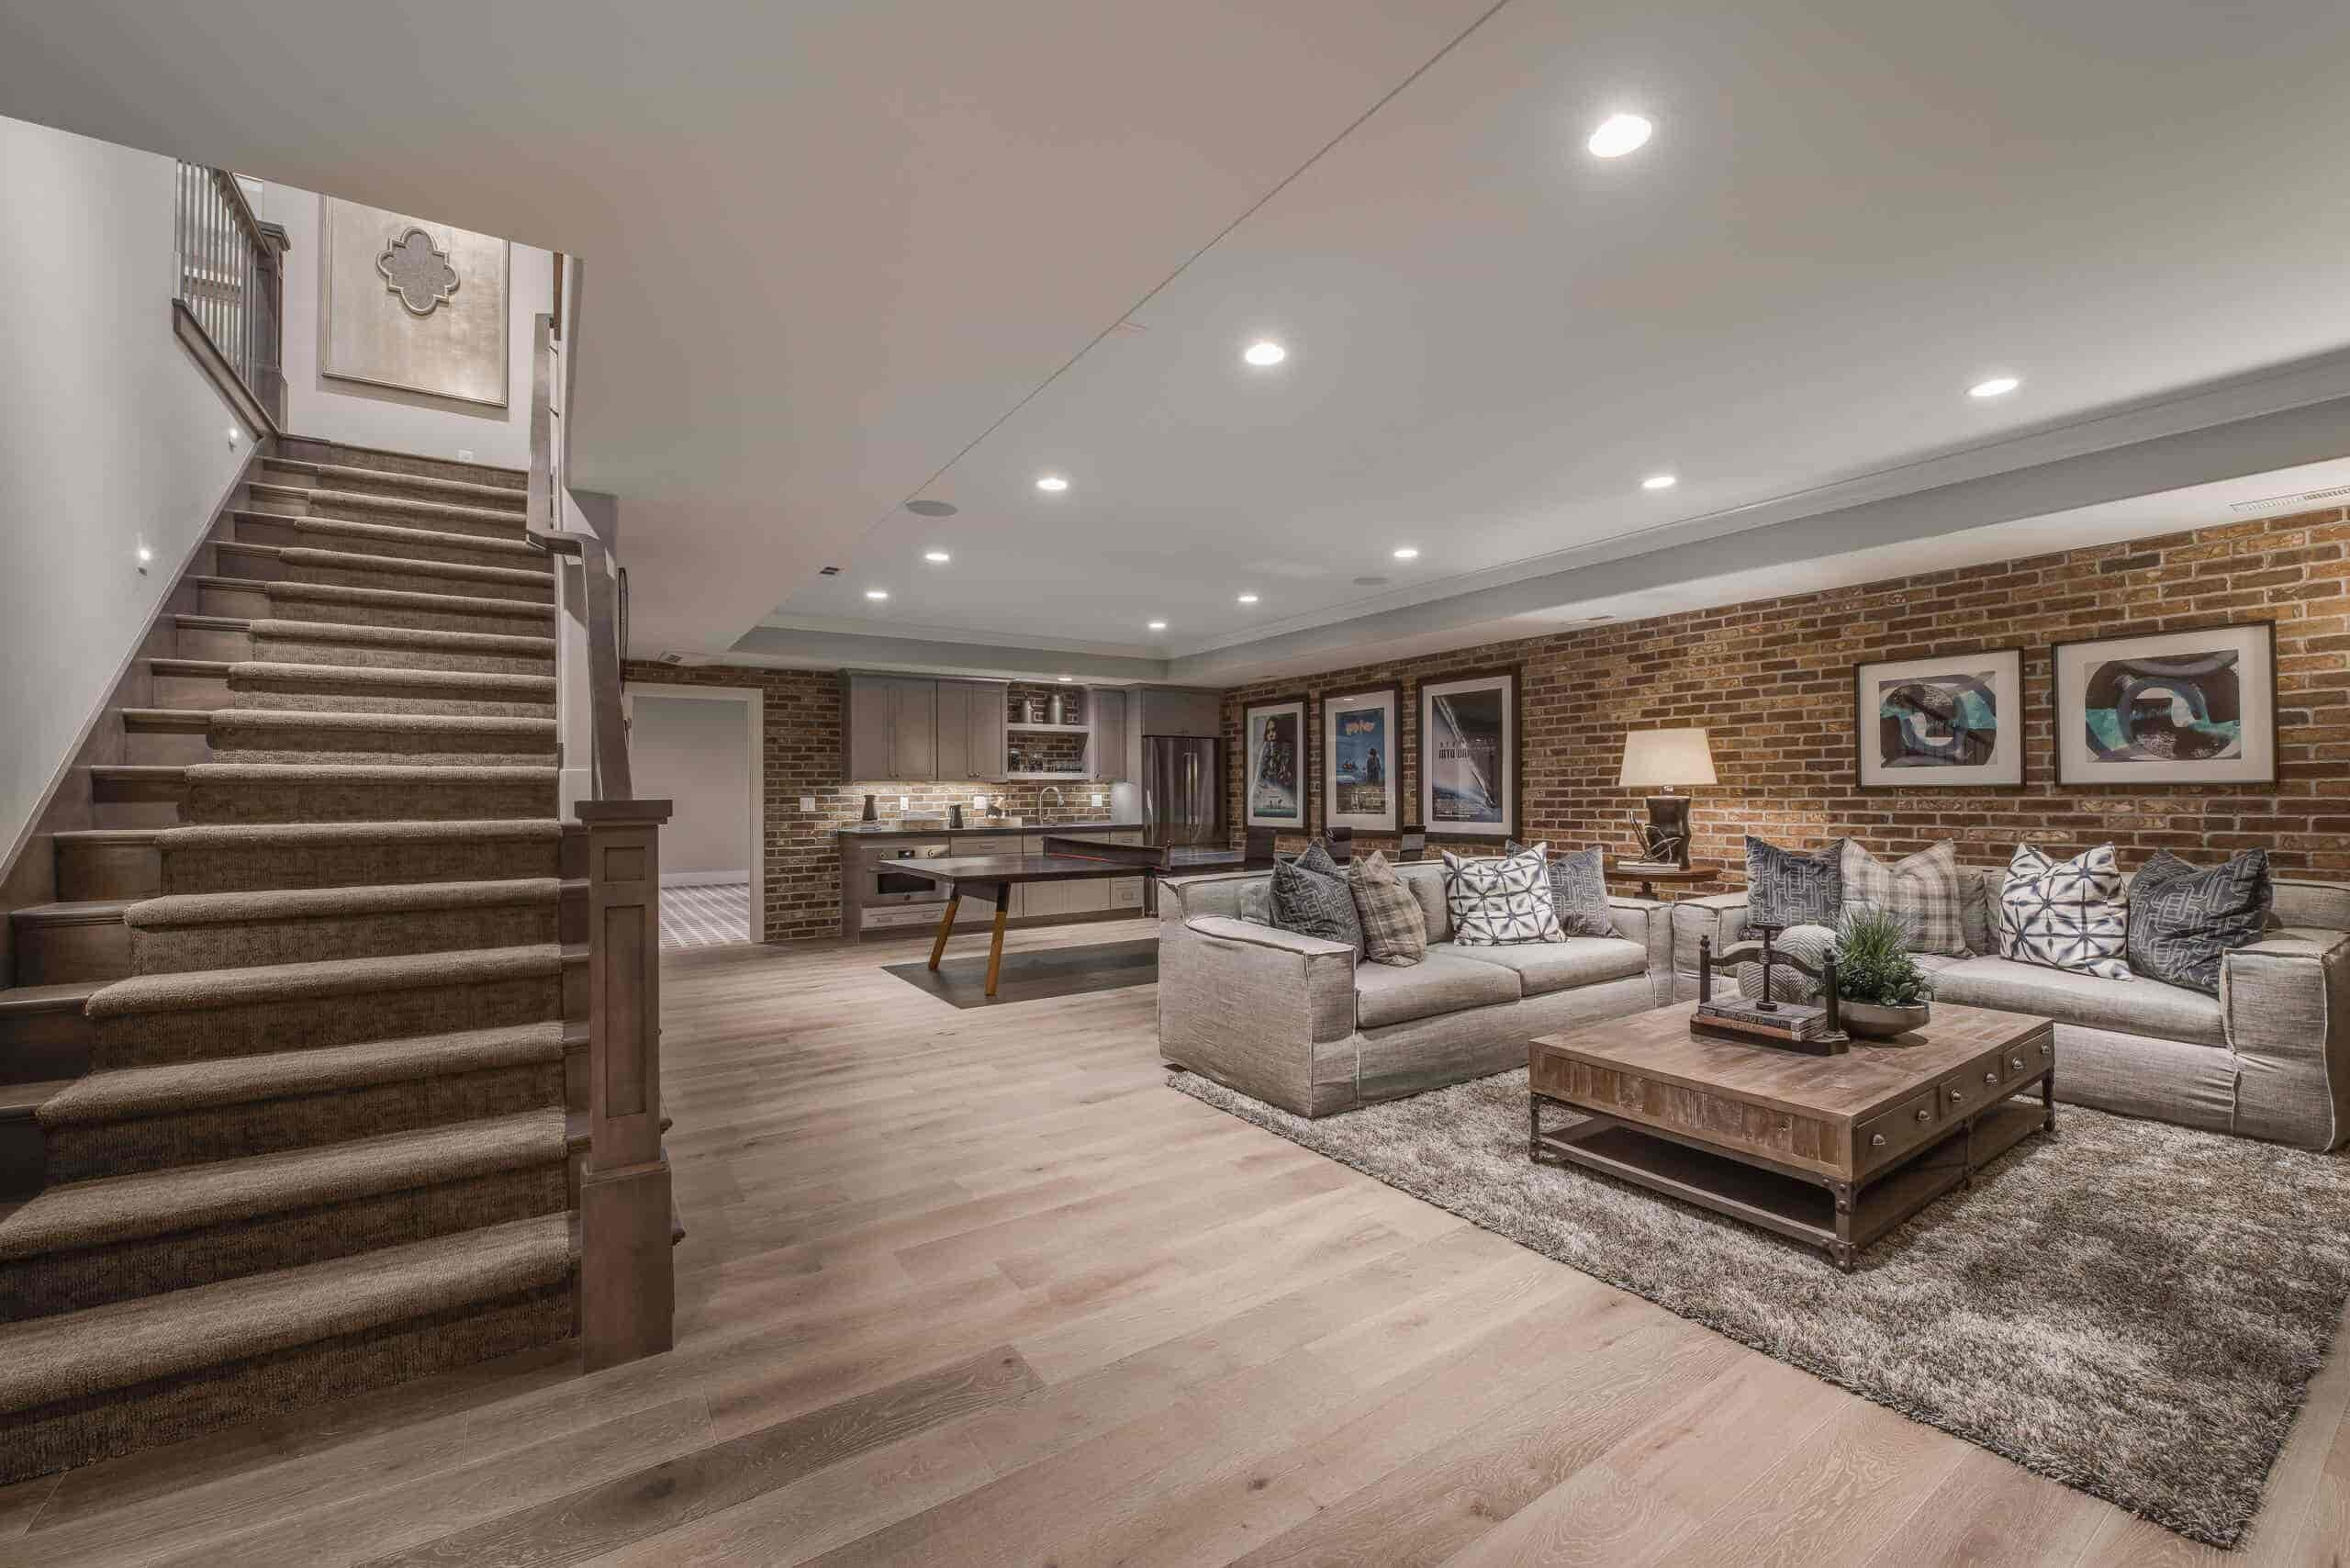 Basement Ideas A Comprehensive Guide To Transforming Your